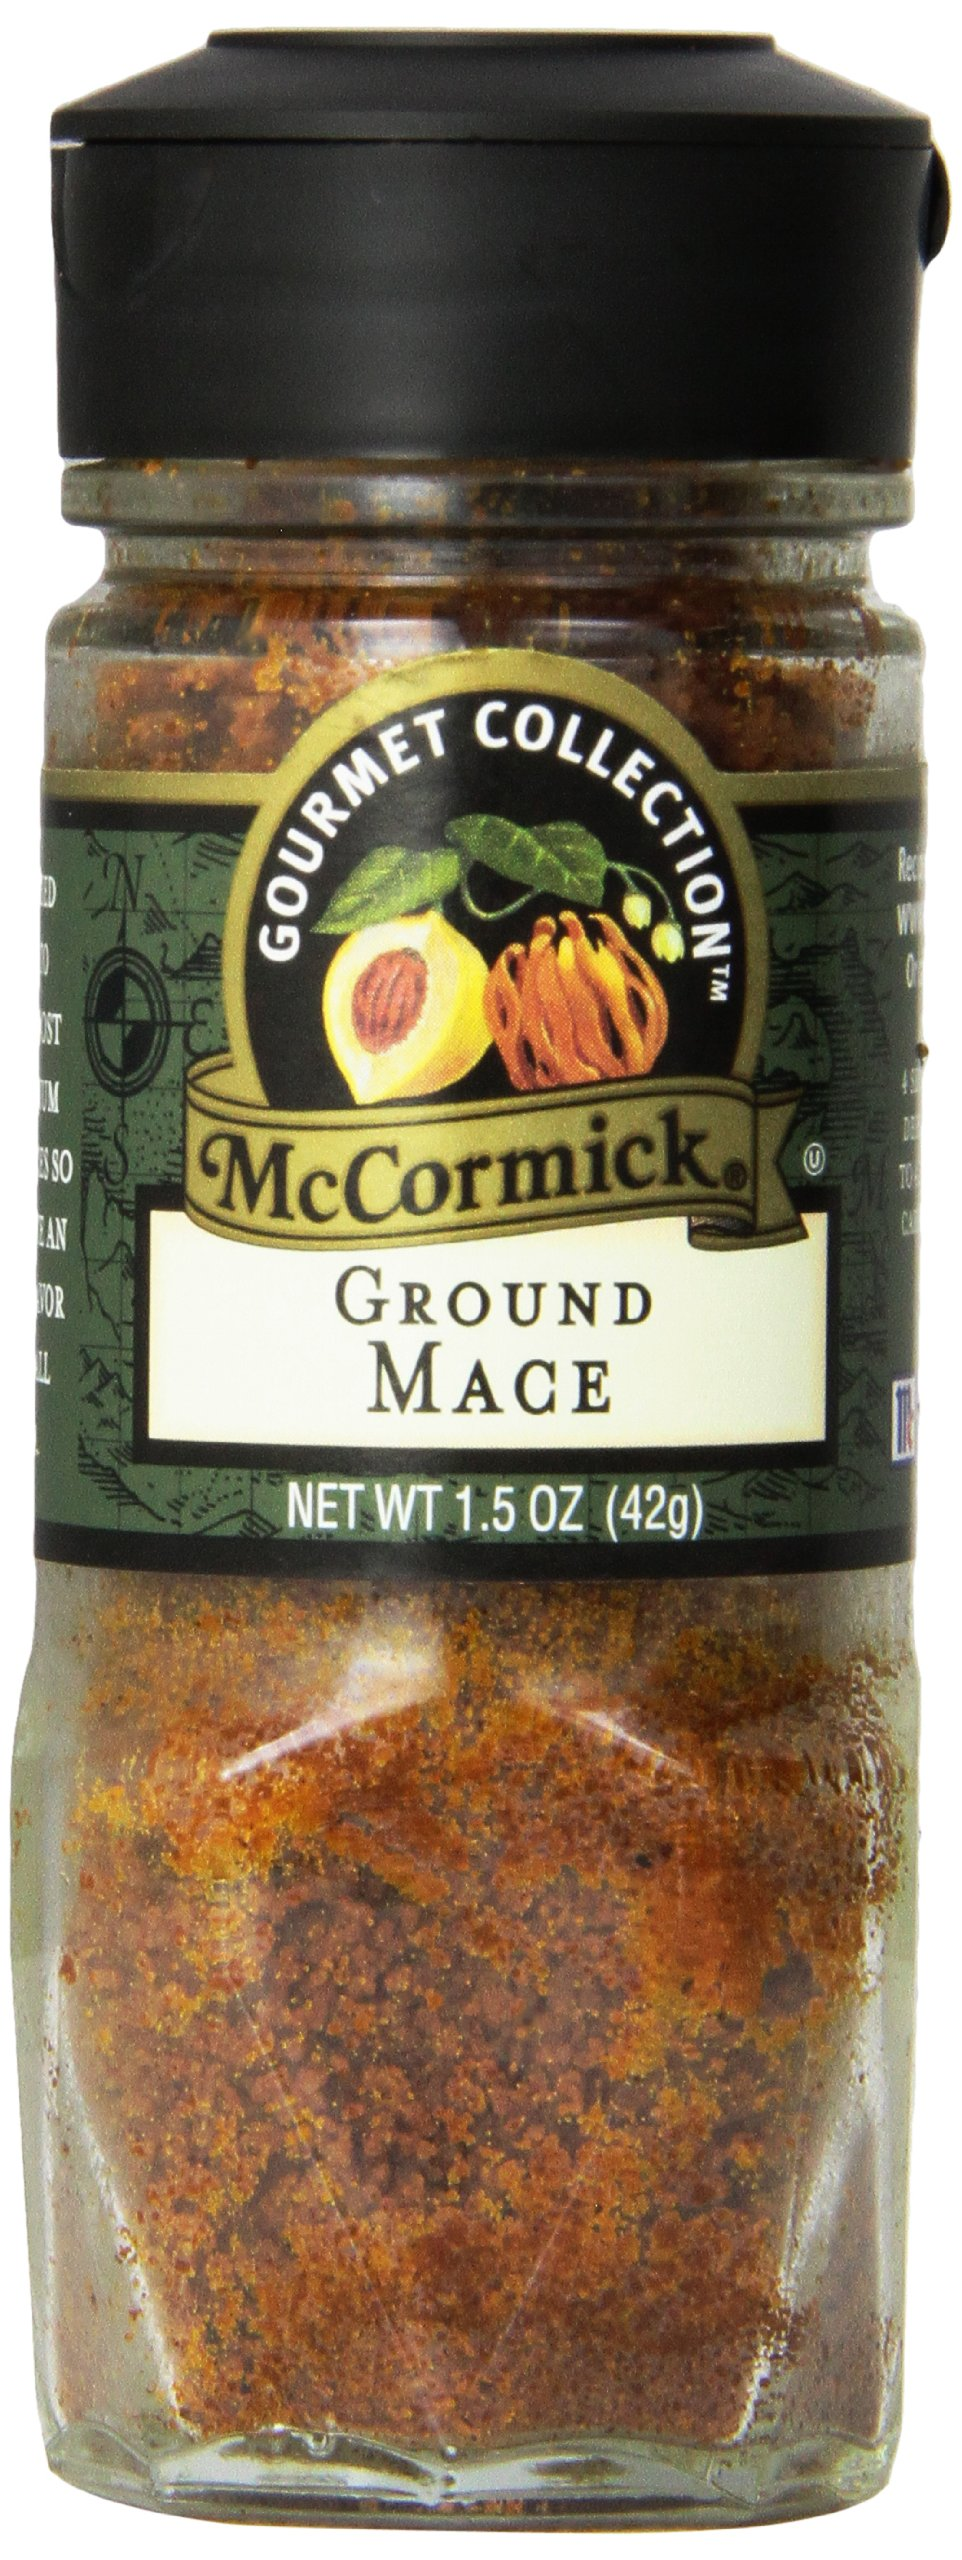 McCormick Gourmet Collection Ground Mace, 1.5 Ounce Unit